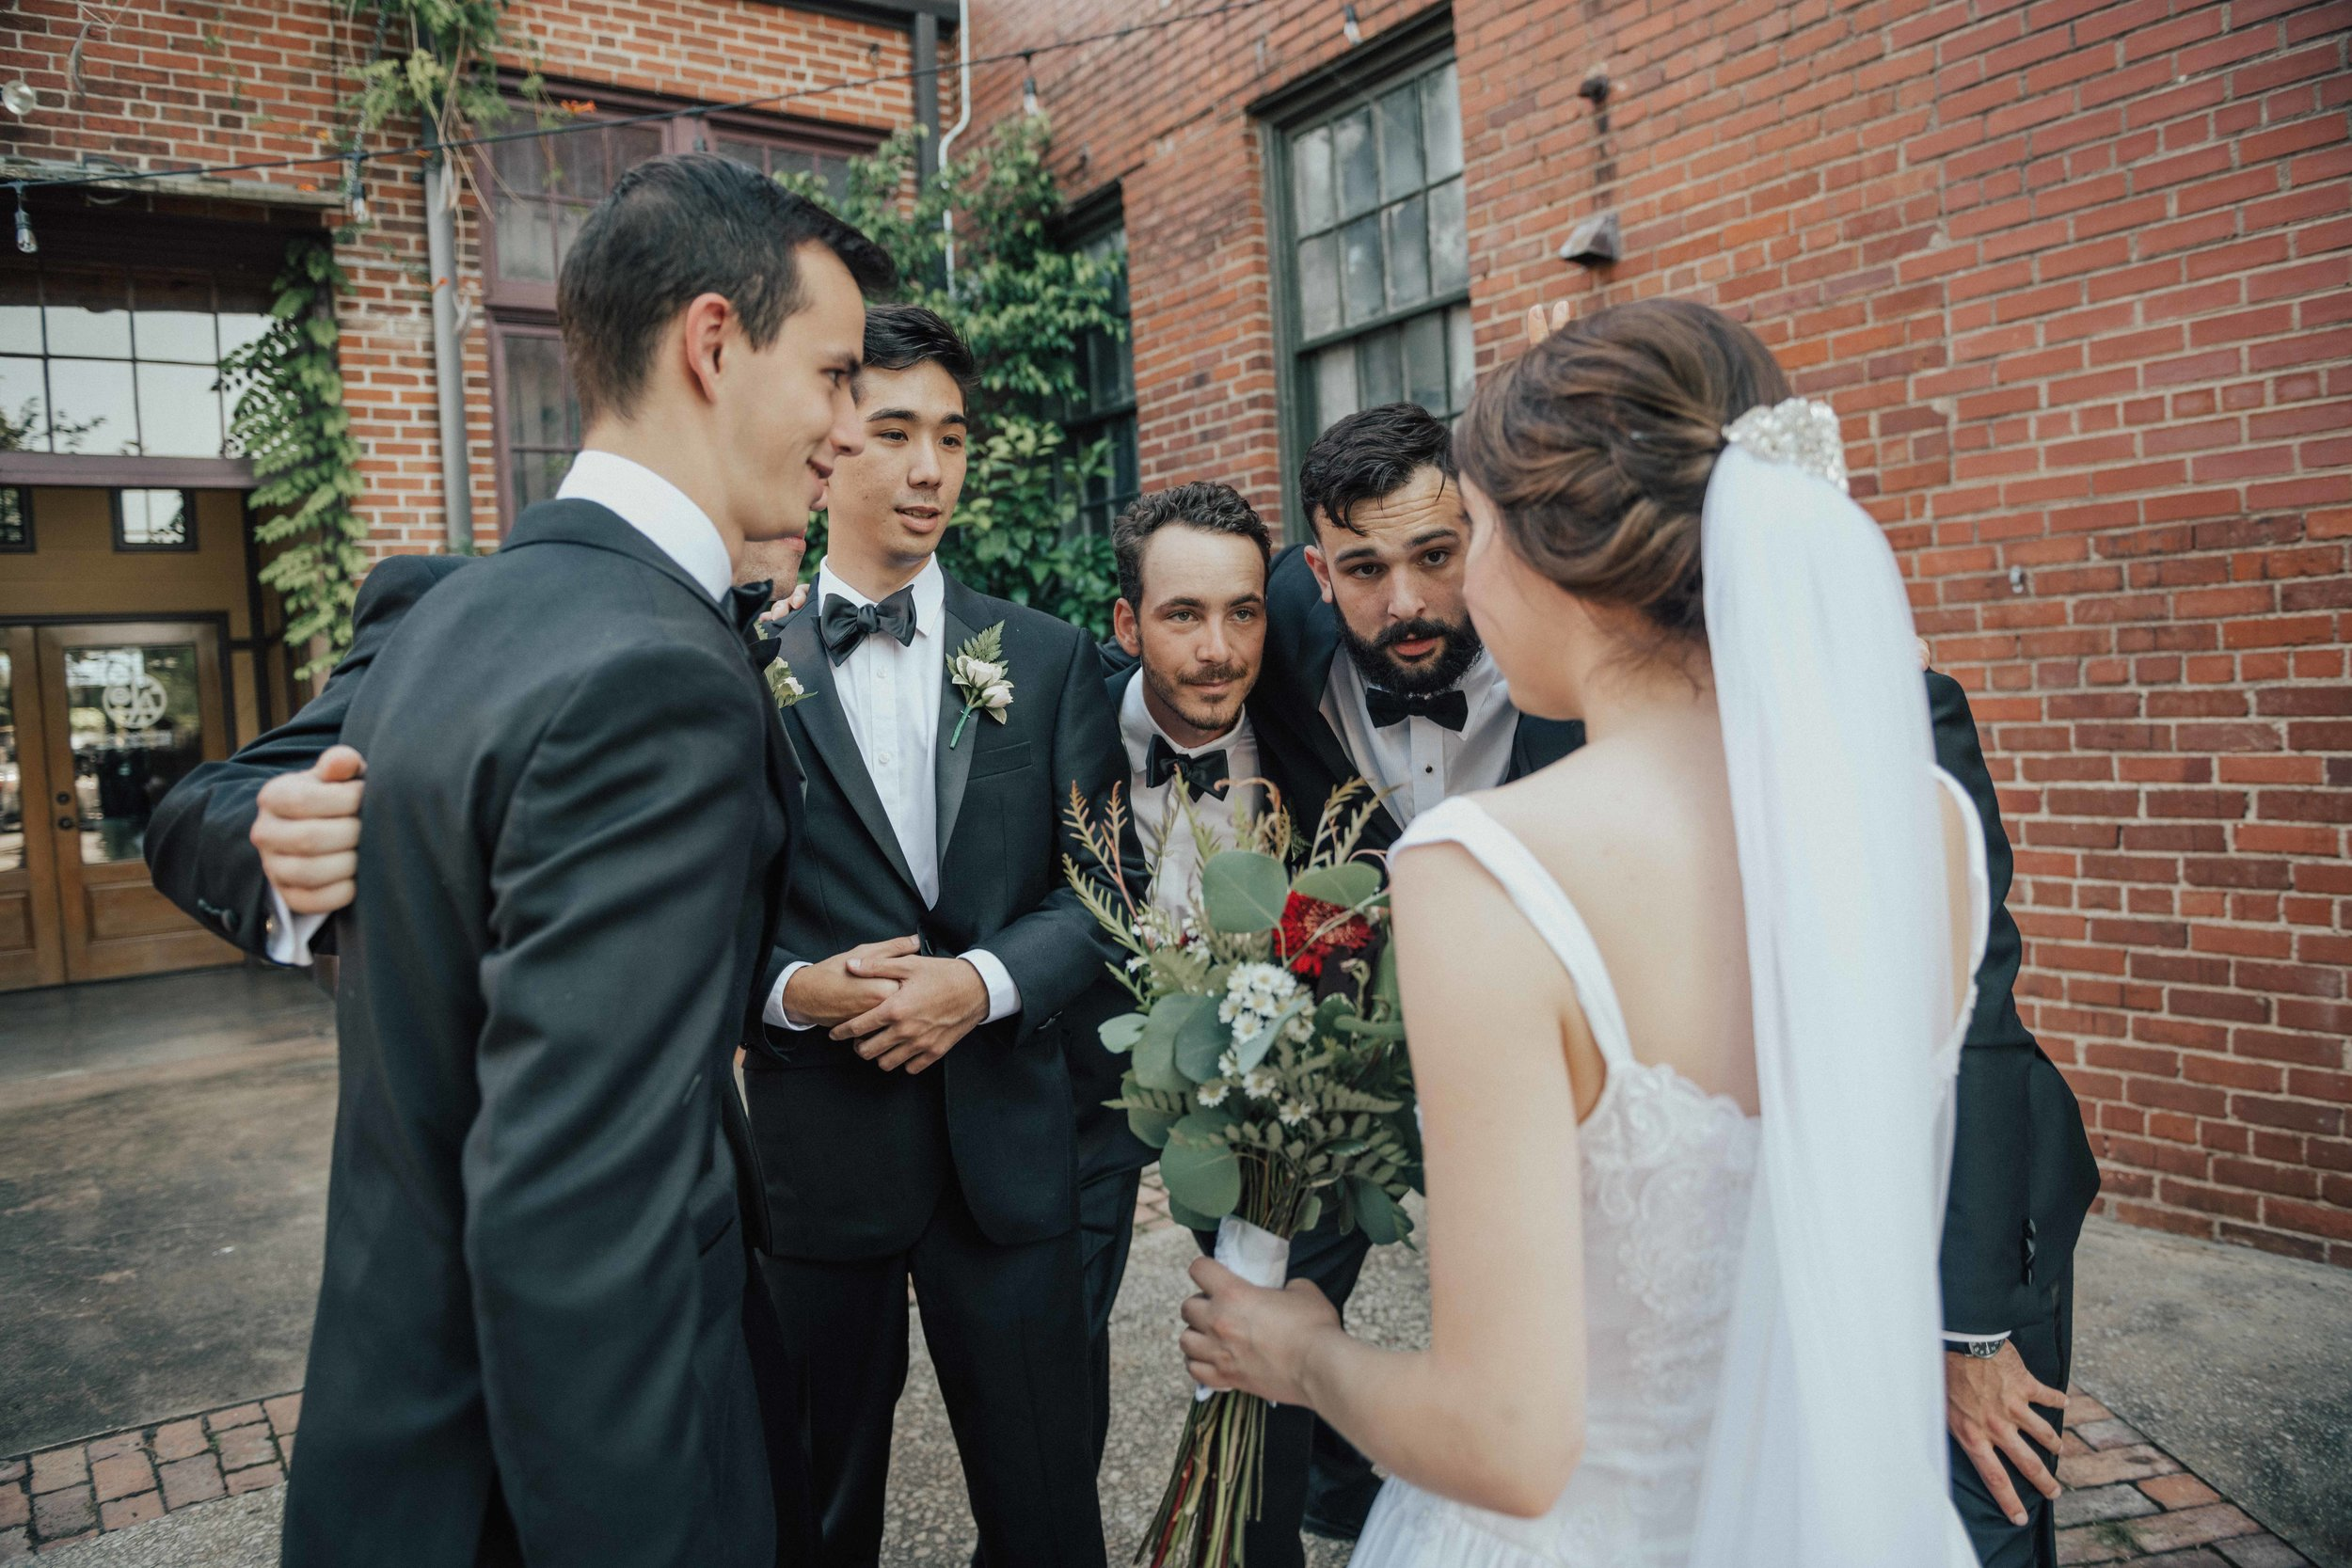 Love when the bride pulls all the groomsmen together to give them the game plan for the day!